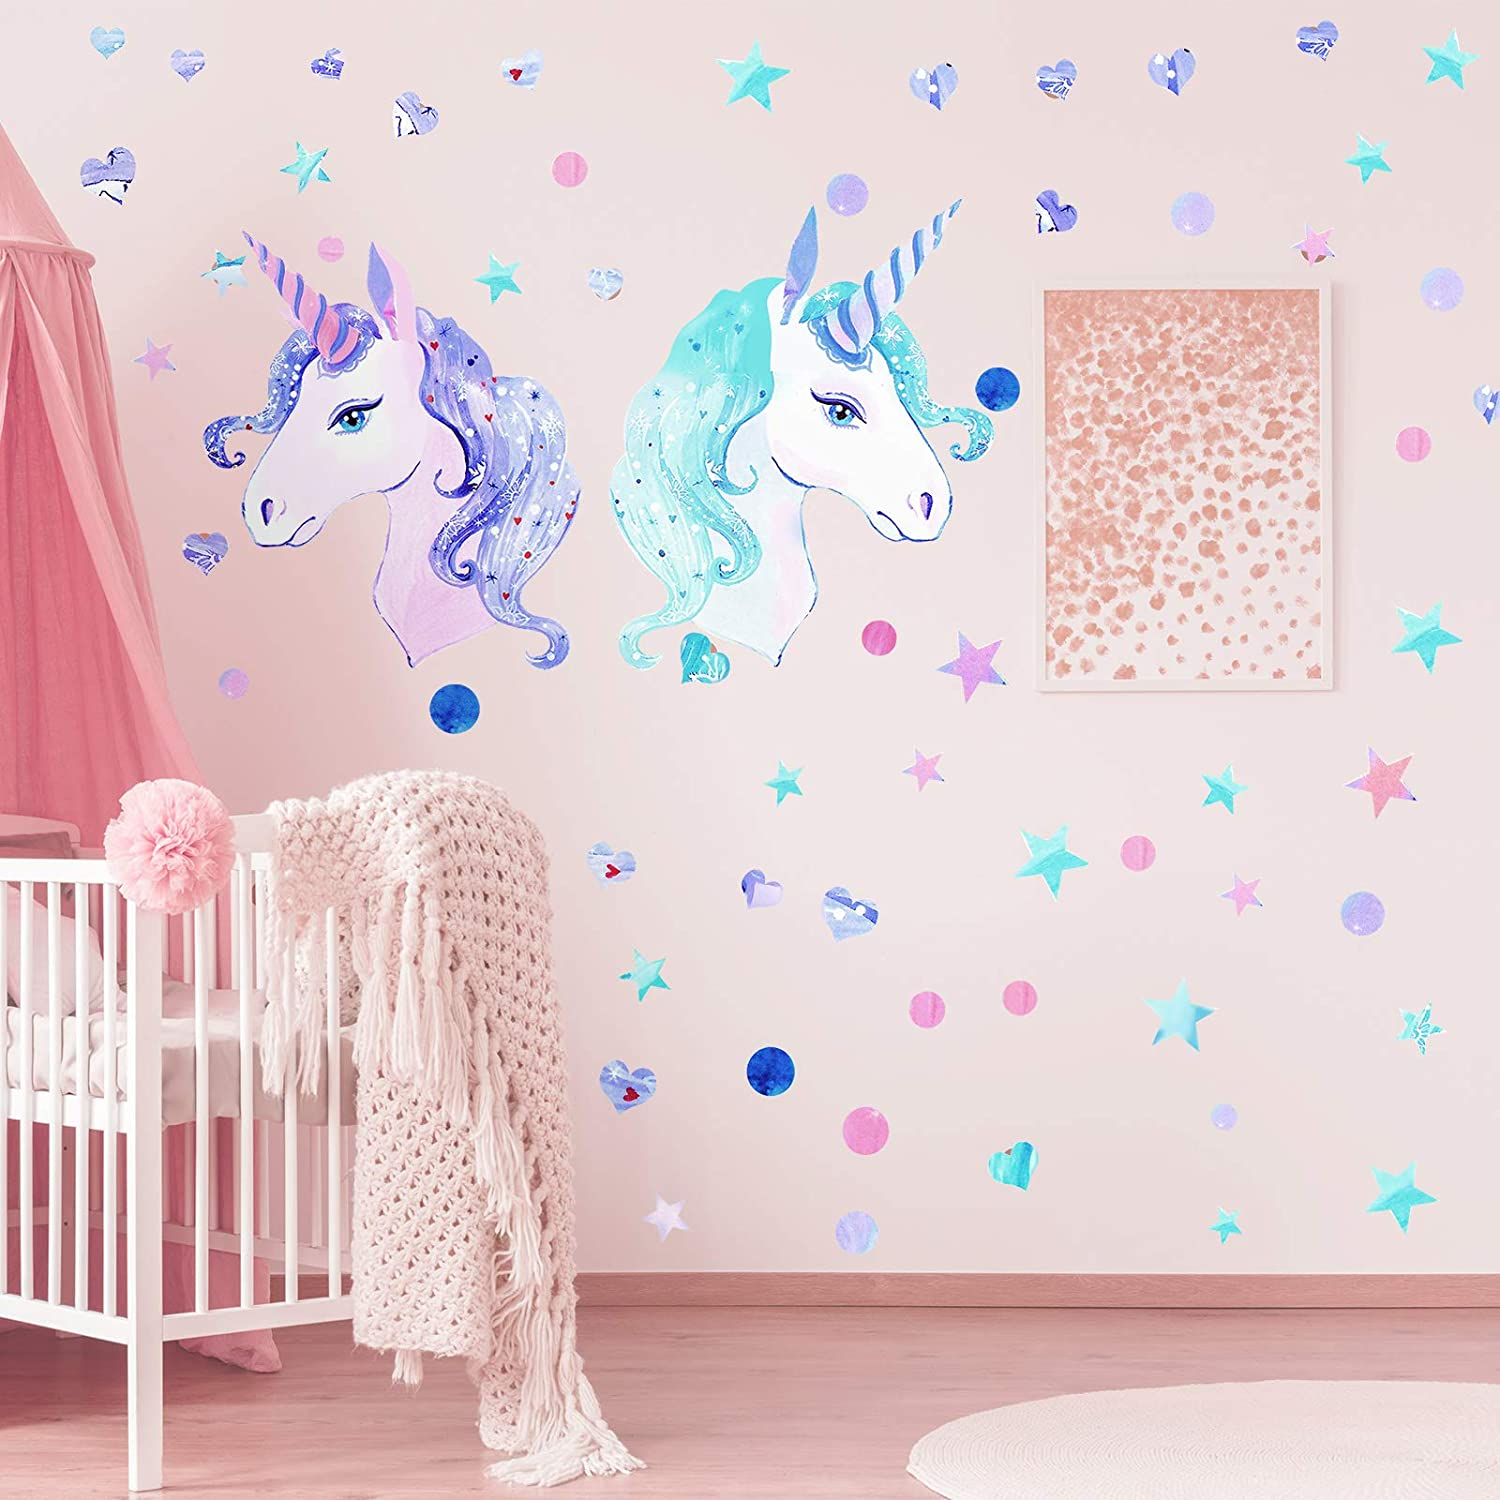 4 Sheets Unicorn Wall Decal Large Unicorn Wall Sticker Star Dot Heart Wall Decal Lovely Unicorn Wall Art Decor Removable DIY Unicorn Wallpaper for Kids Bedroom Nursery Playroom Living Room Party Decor